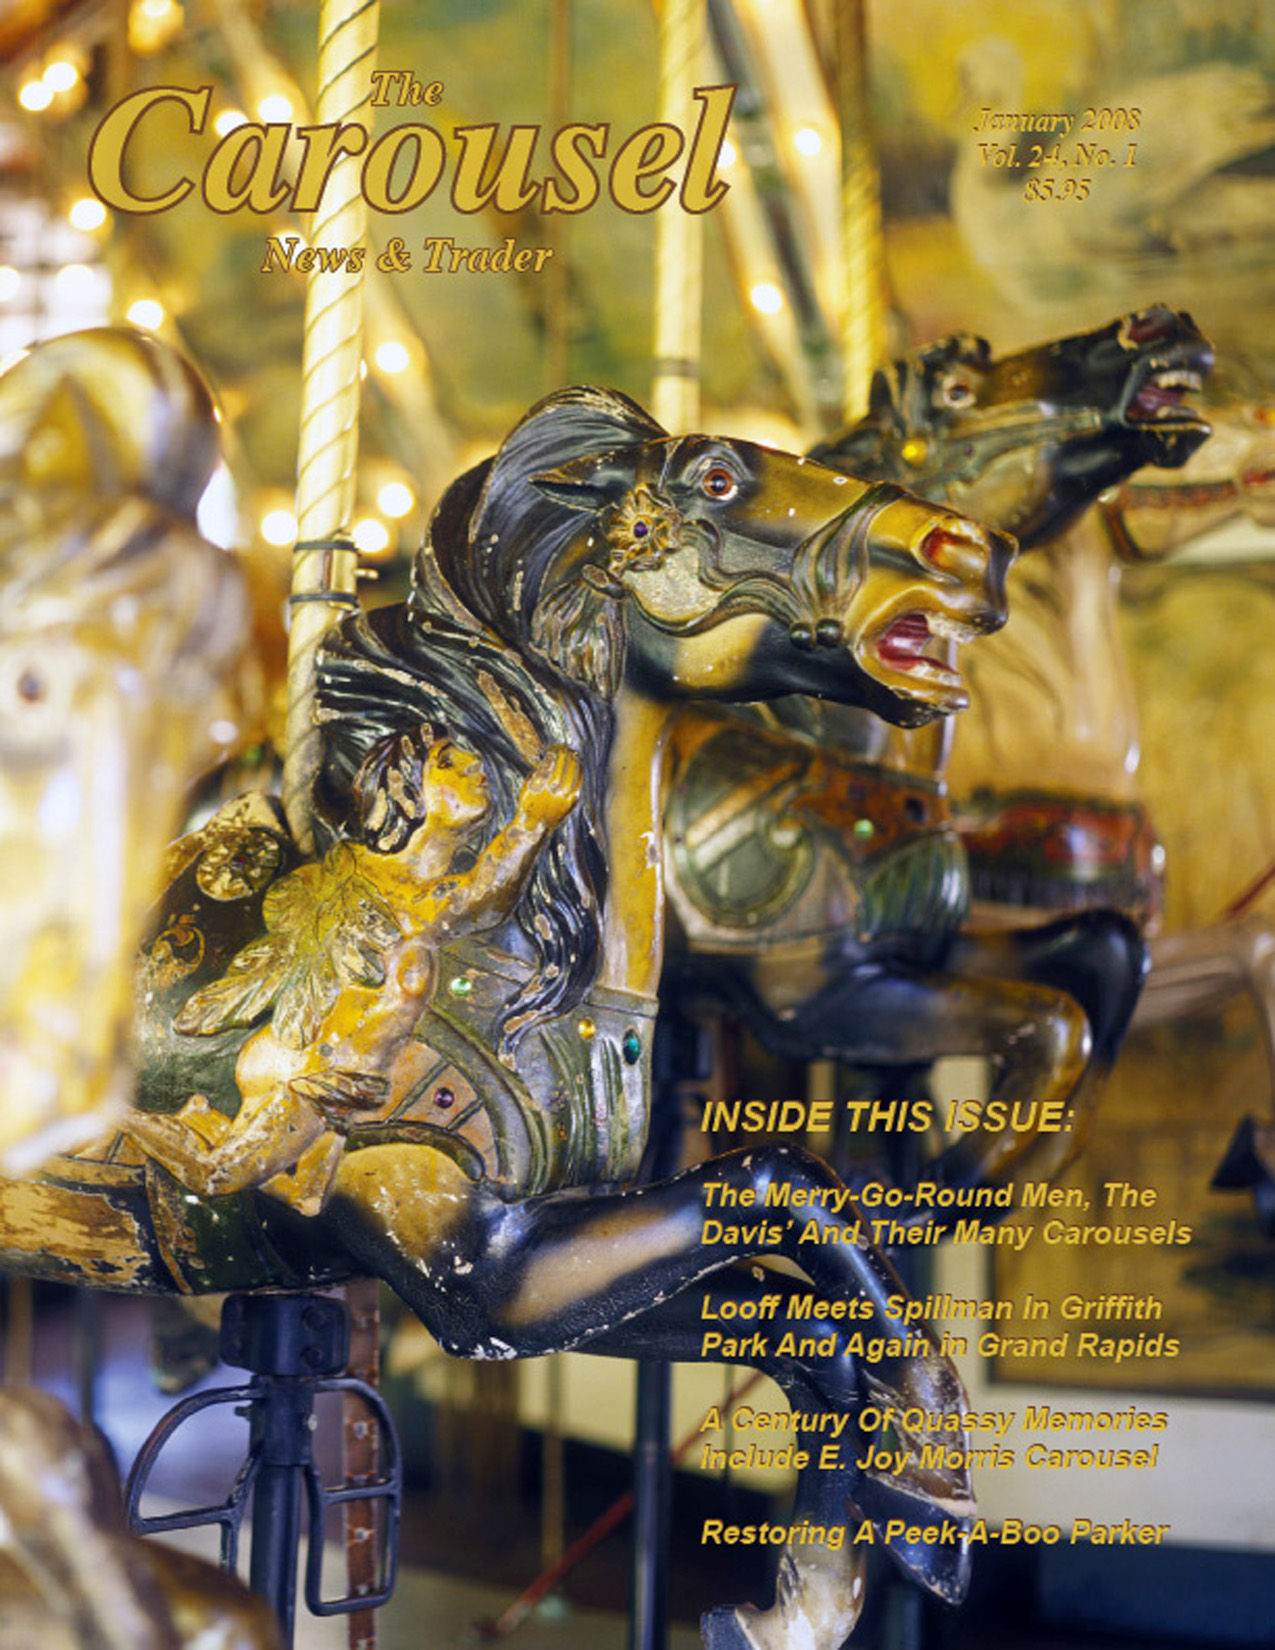 Carousel-news-cover-1-Griffith-Park-carousel-Jan_2008